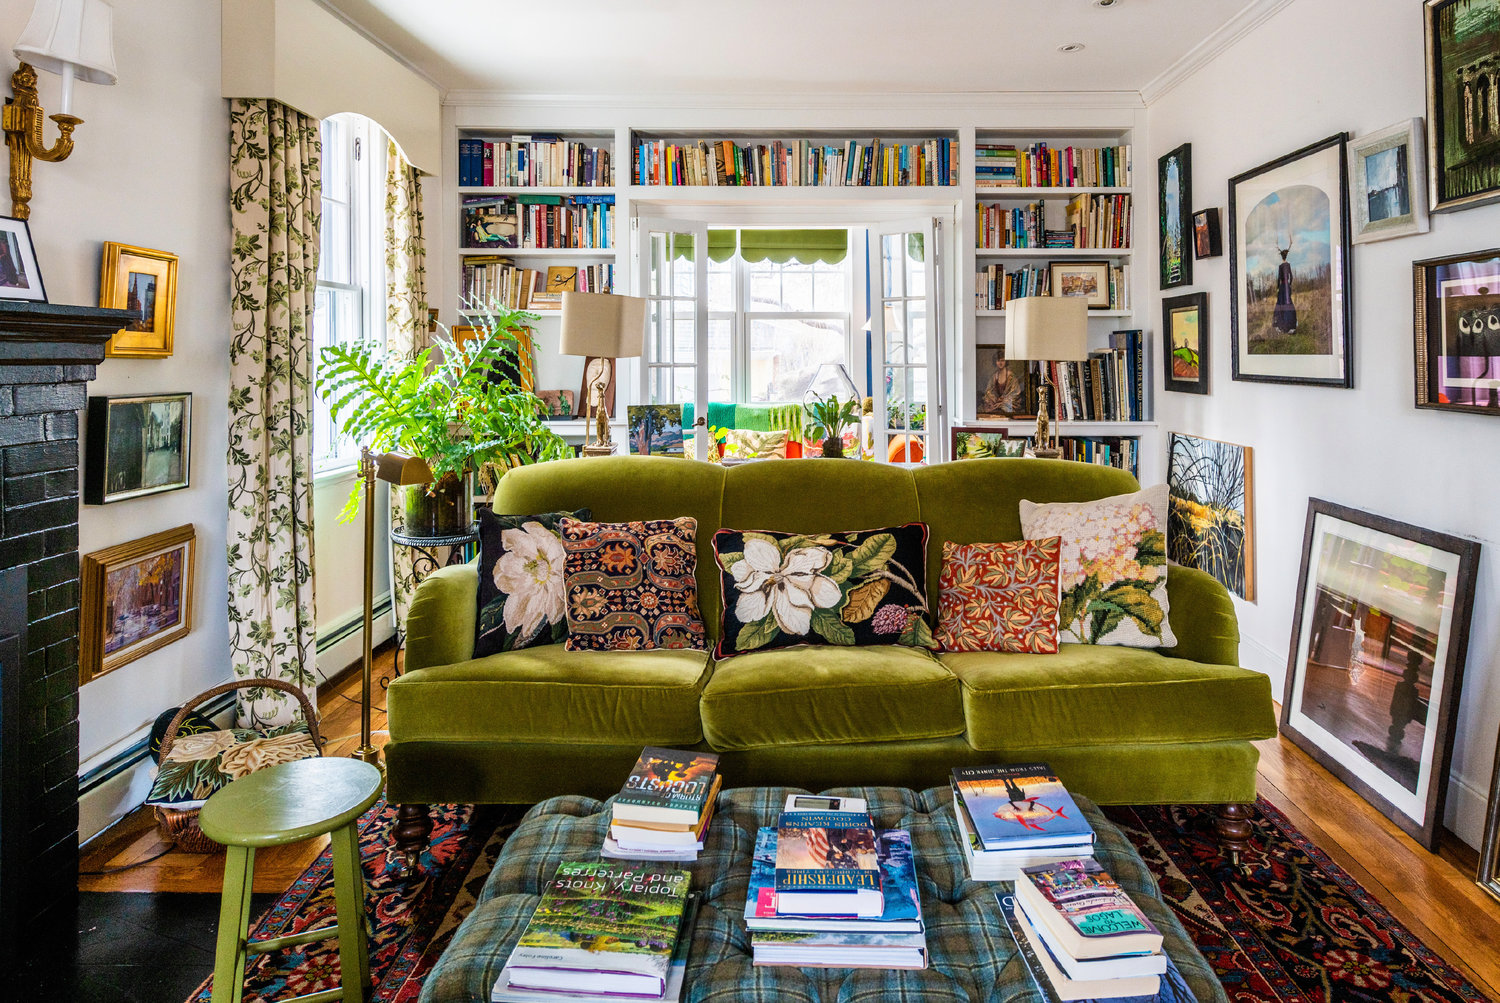 Books and plants are key elements throughout the home